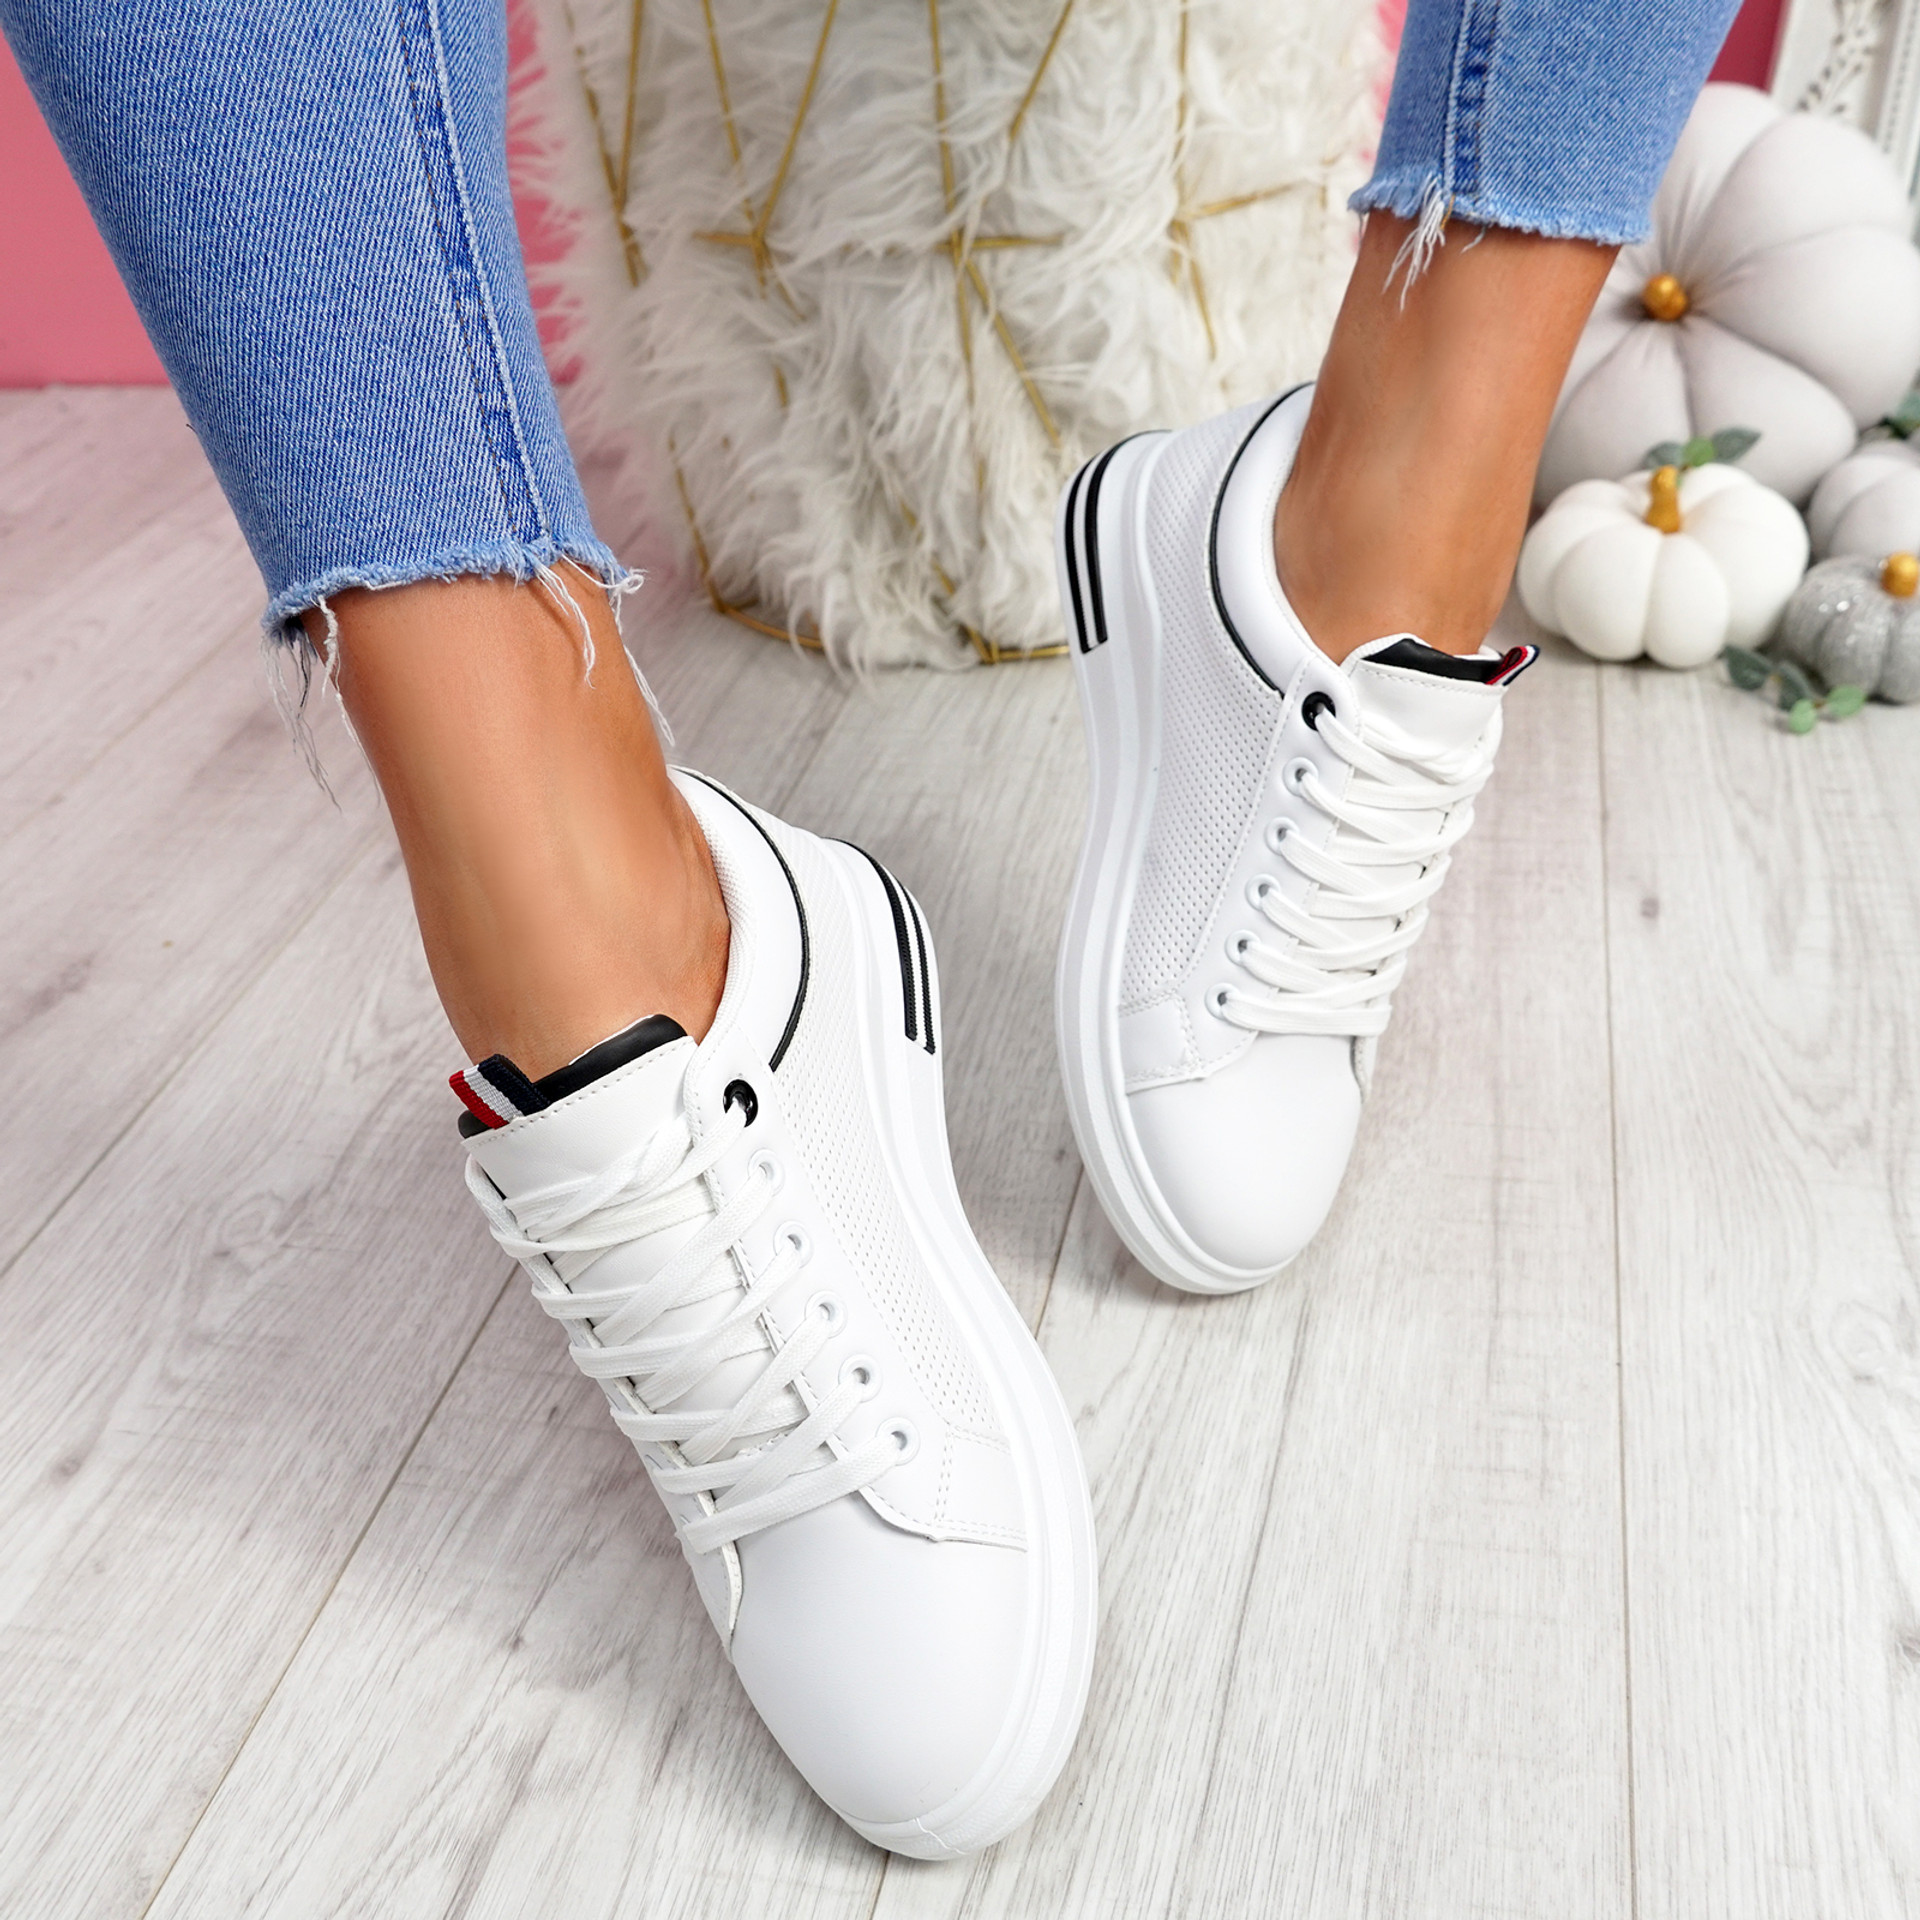 Huvy White Black Lace Up Trainers